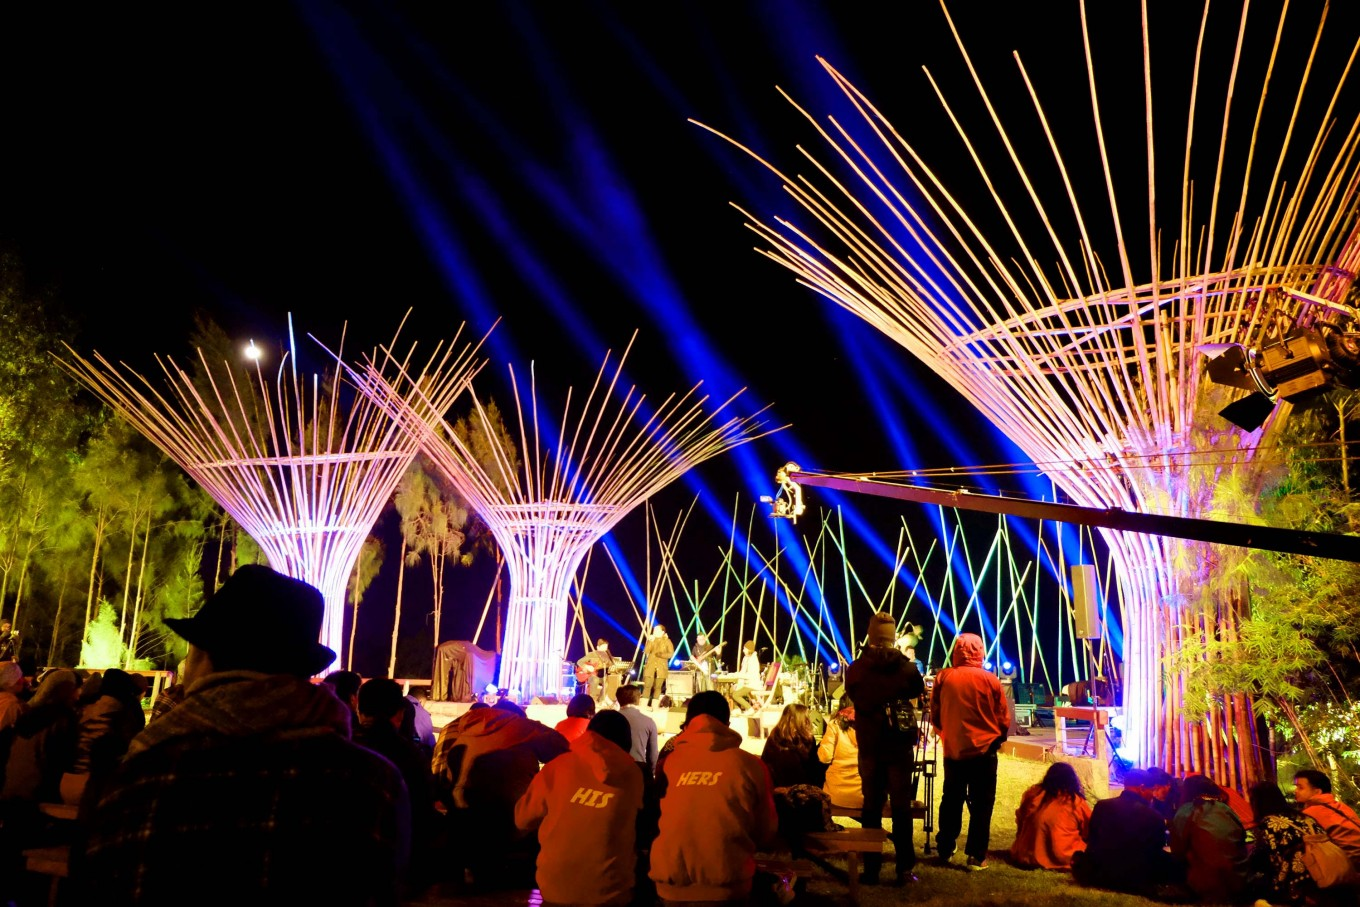 The event has used bamboo as part of its stage decorations since its very first year. JP/Tarko Sudiarno